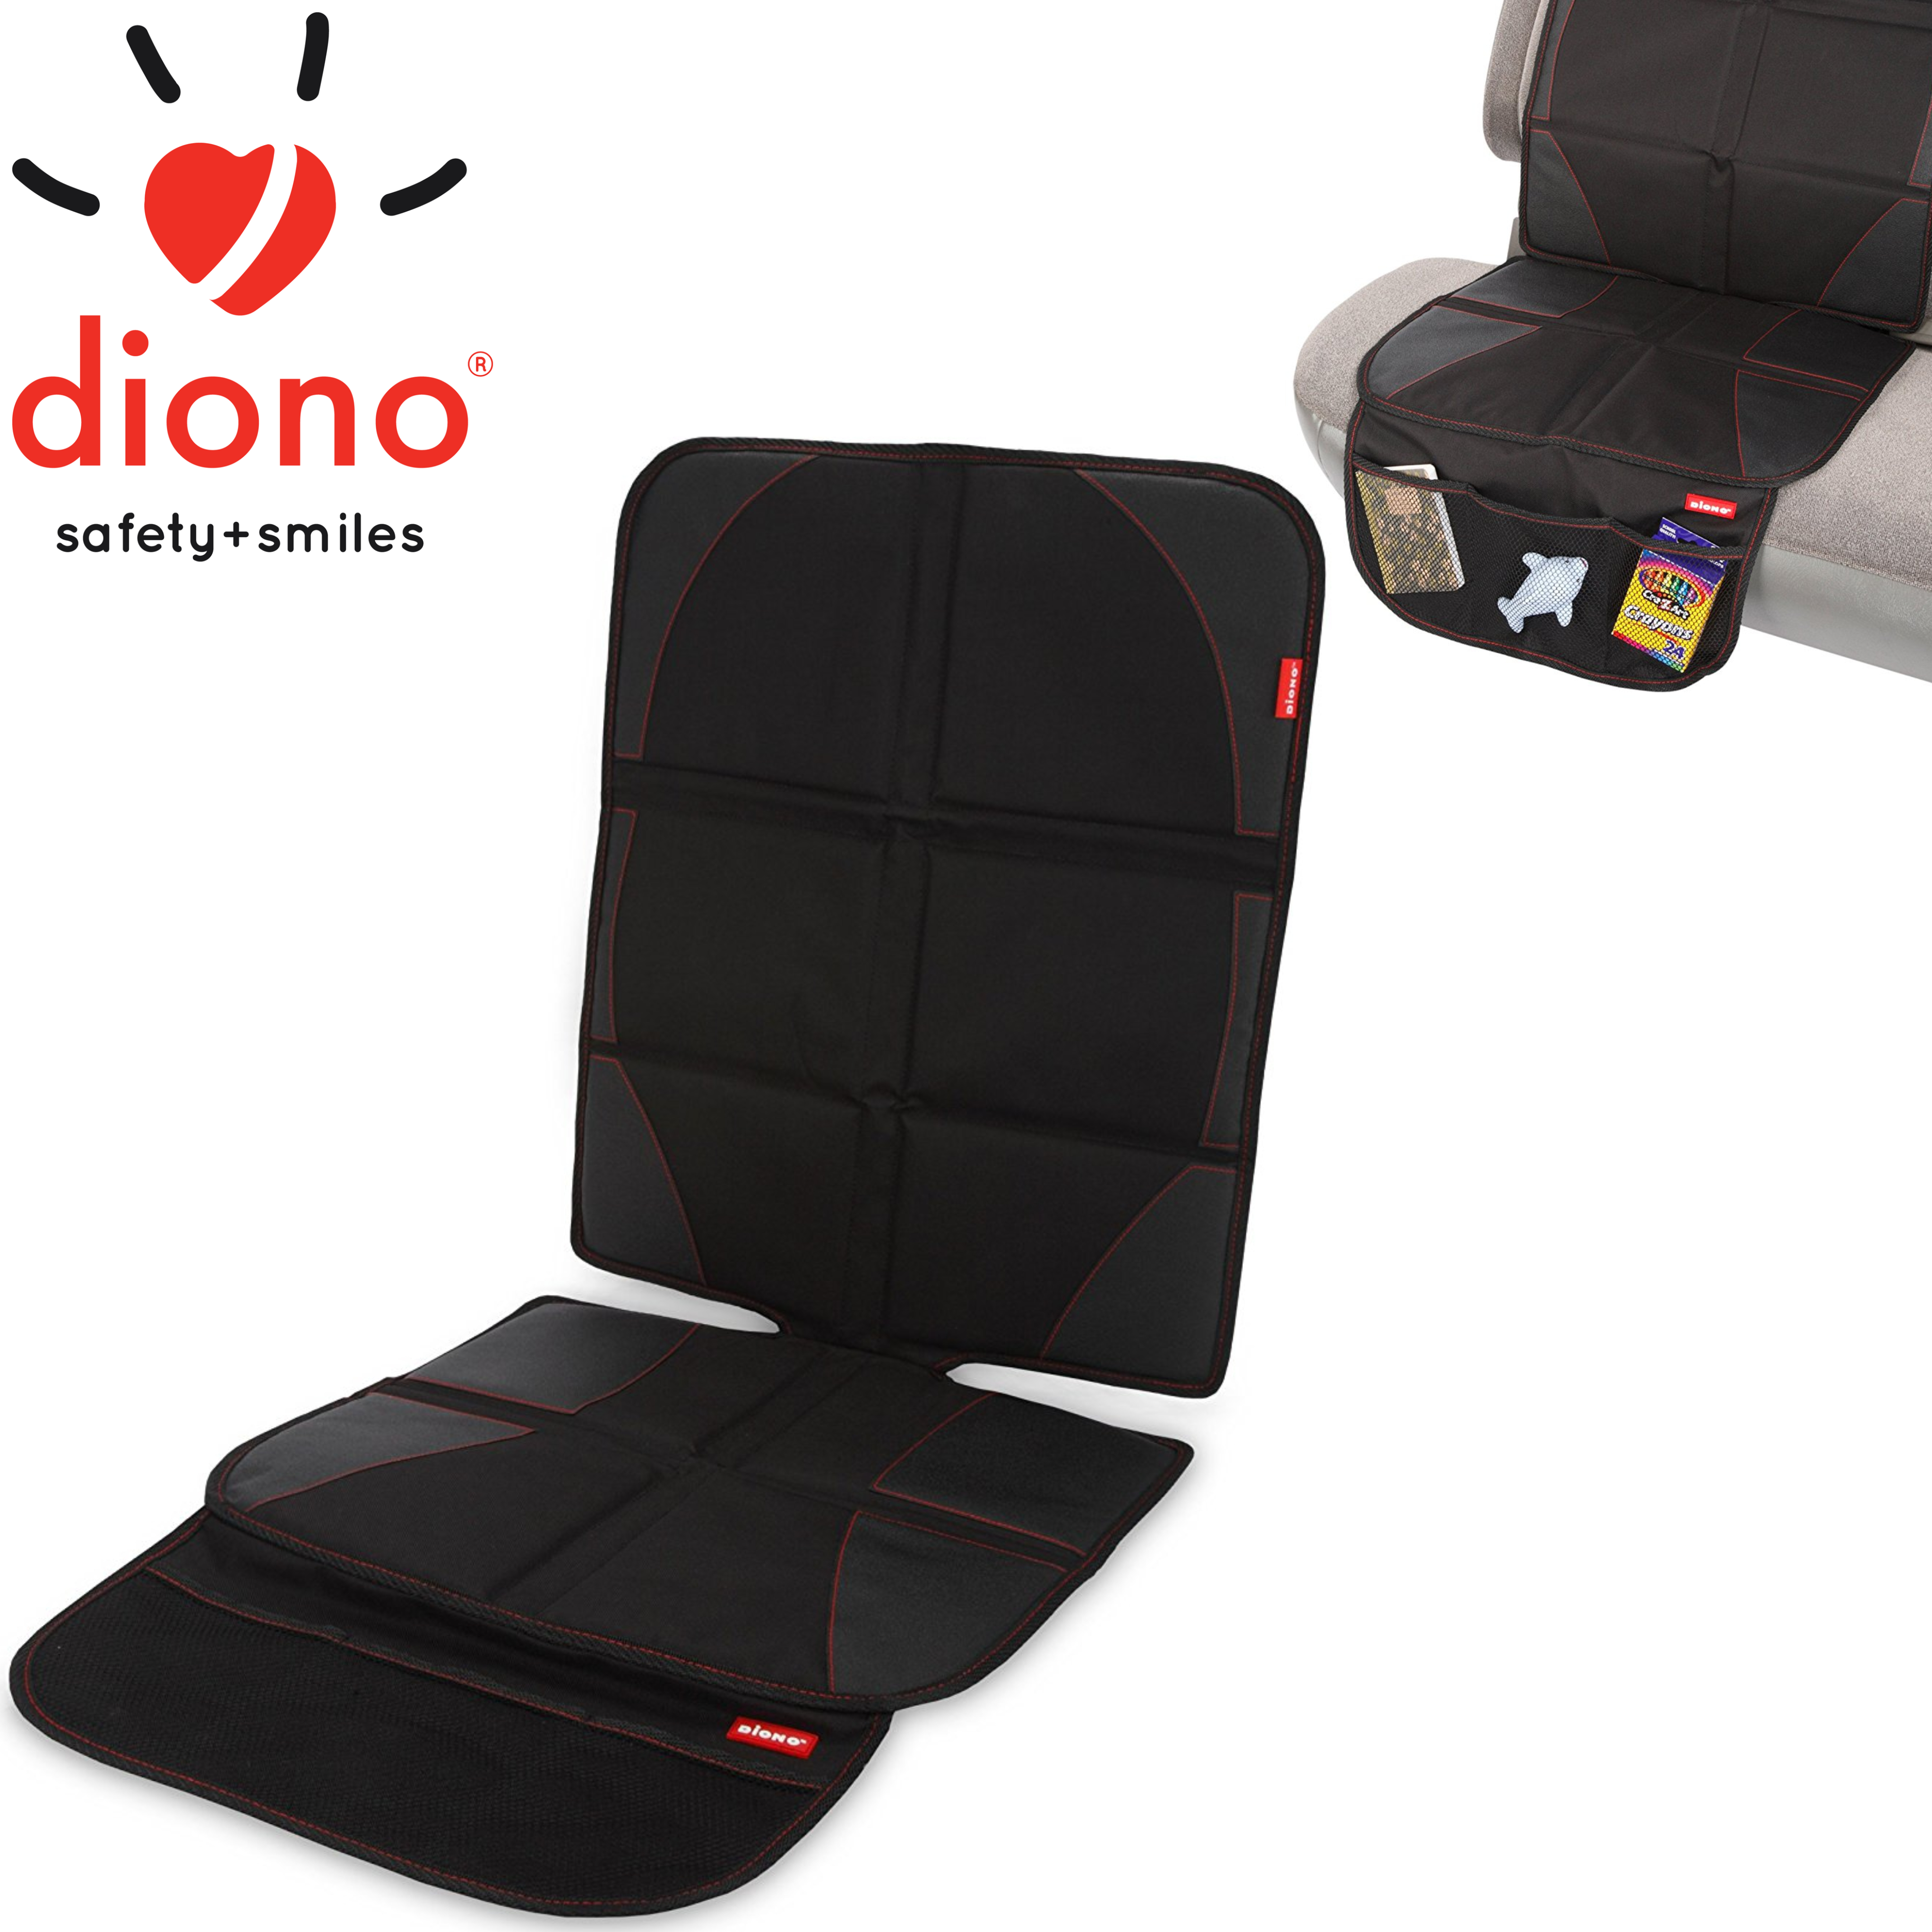 Diono Ultra Mat Car Seat Protector | Handy Pocket In Front For Travel Accessories